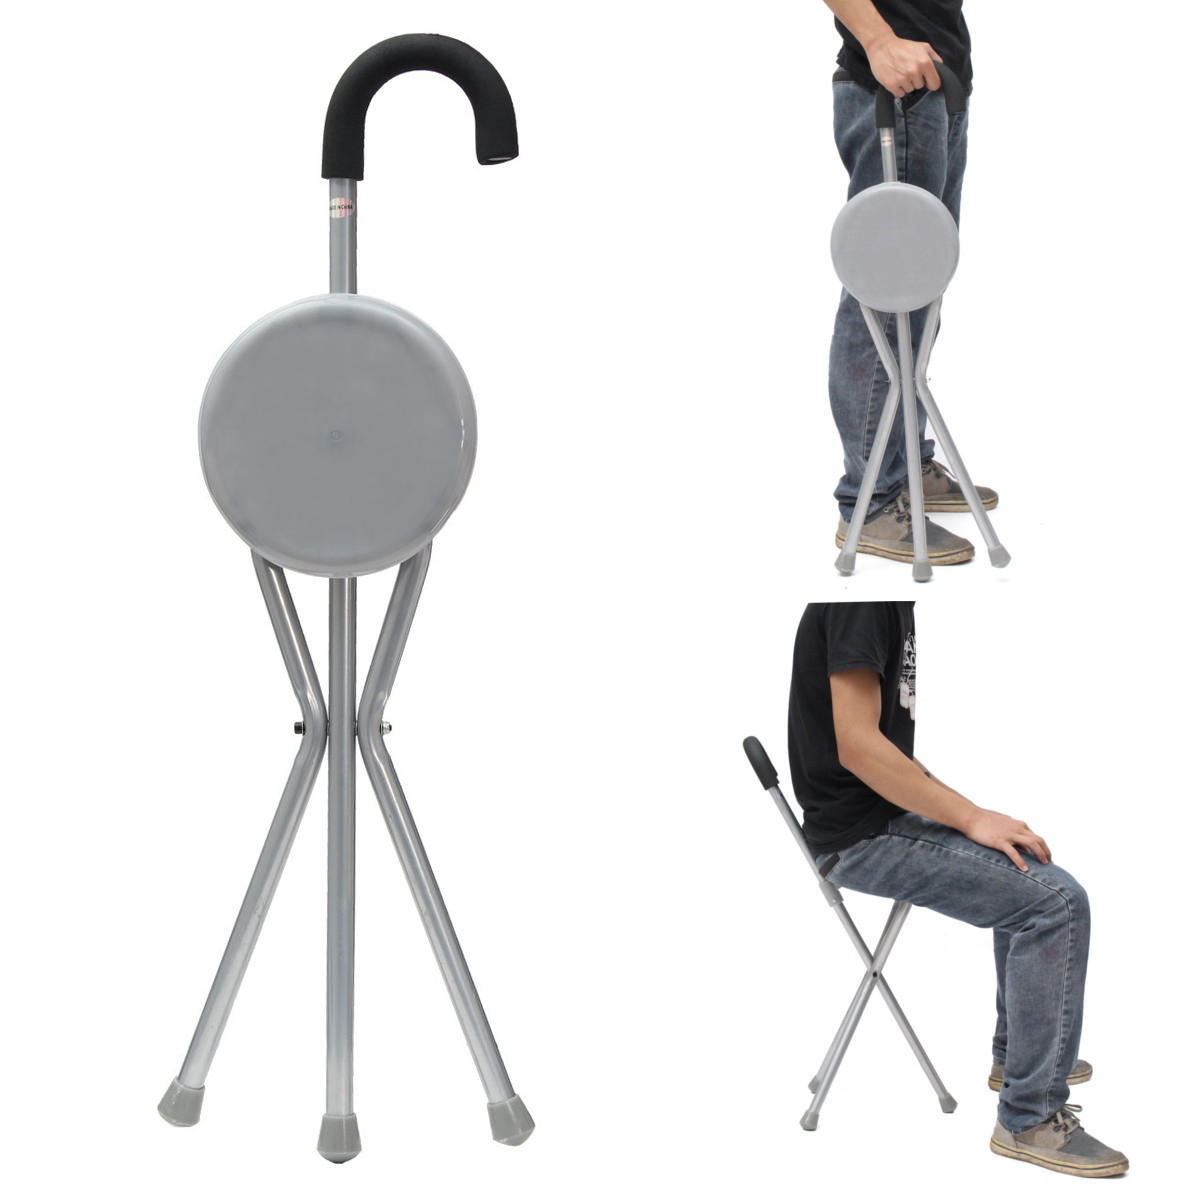 Portable Stool Outdoor Travel Folding Stool Chair Portable Tripod Cane Walking Stick Seat Camping Hiking